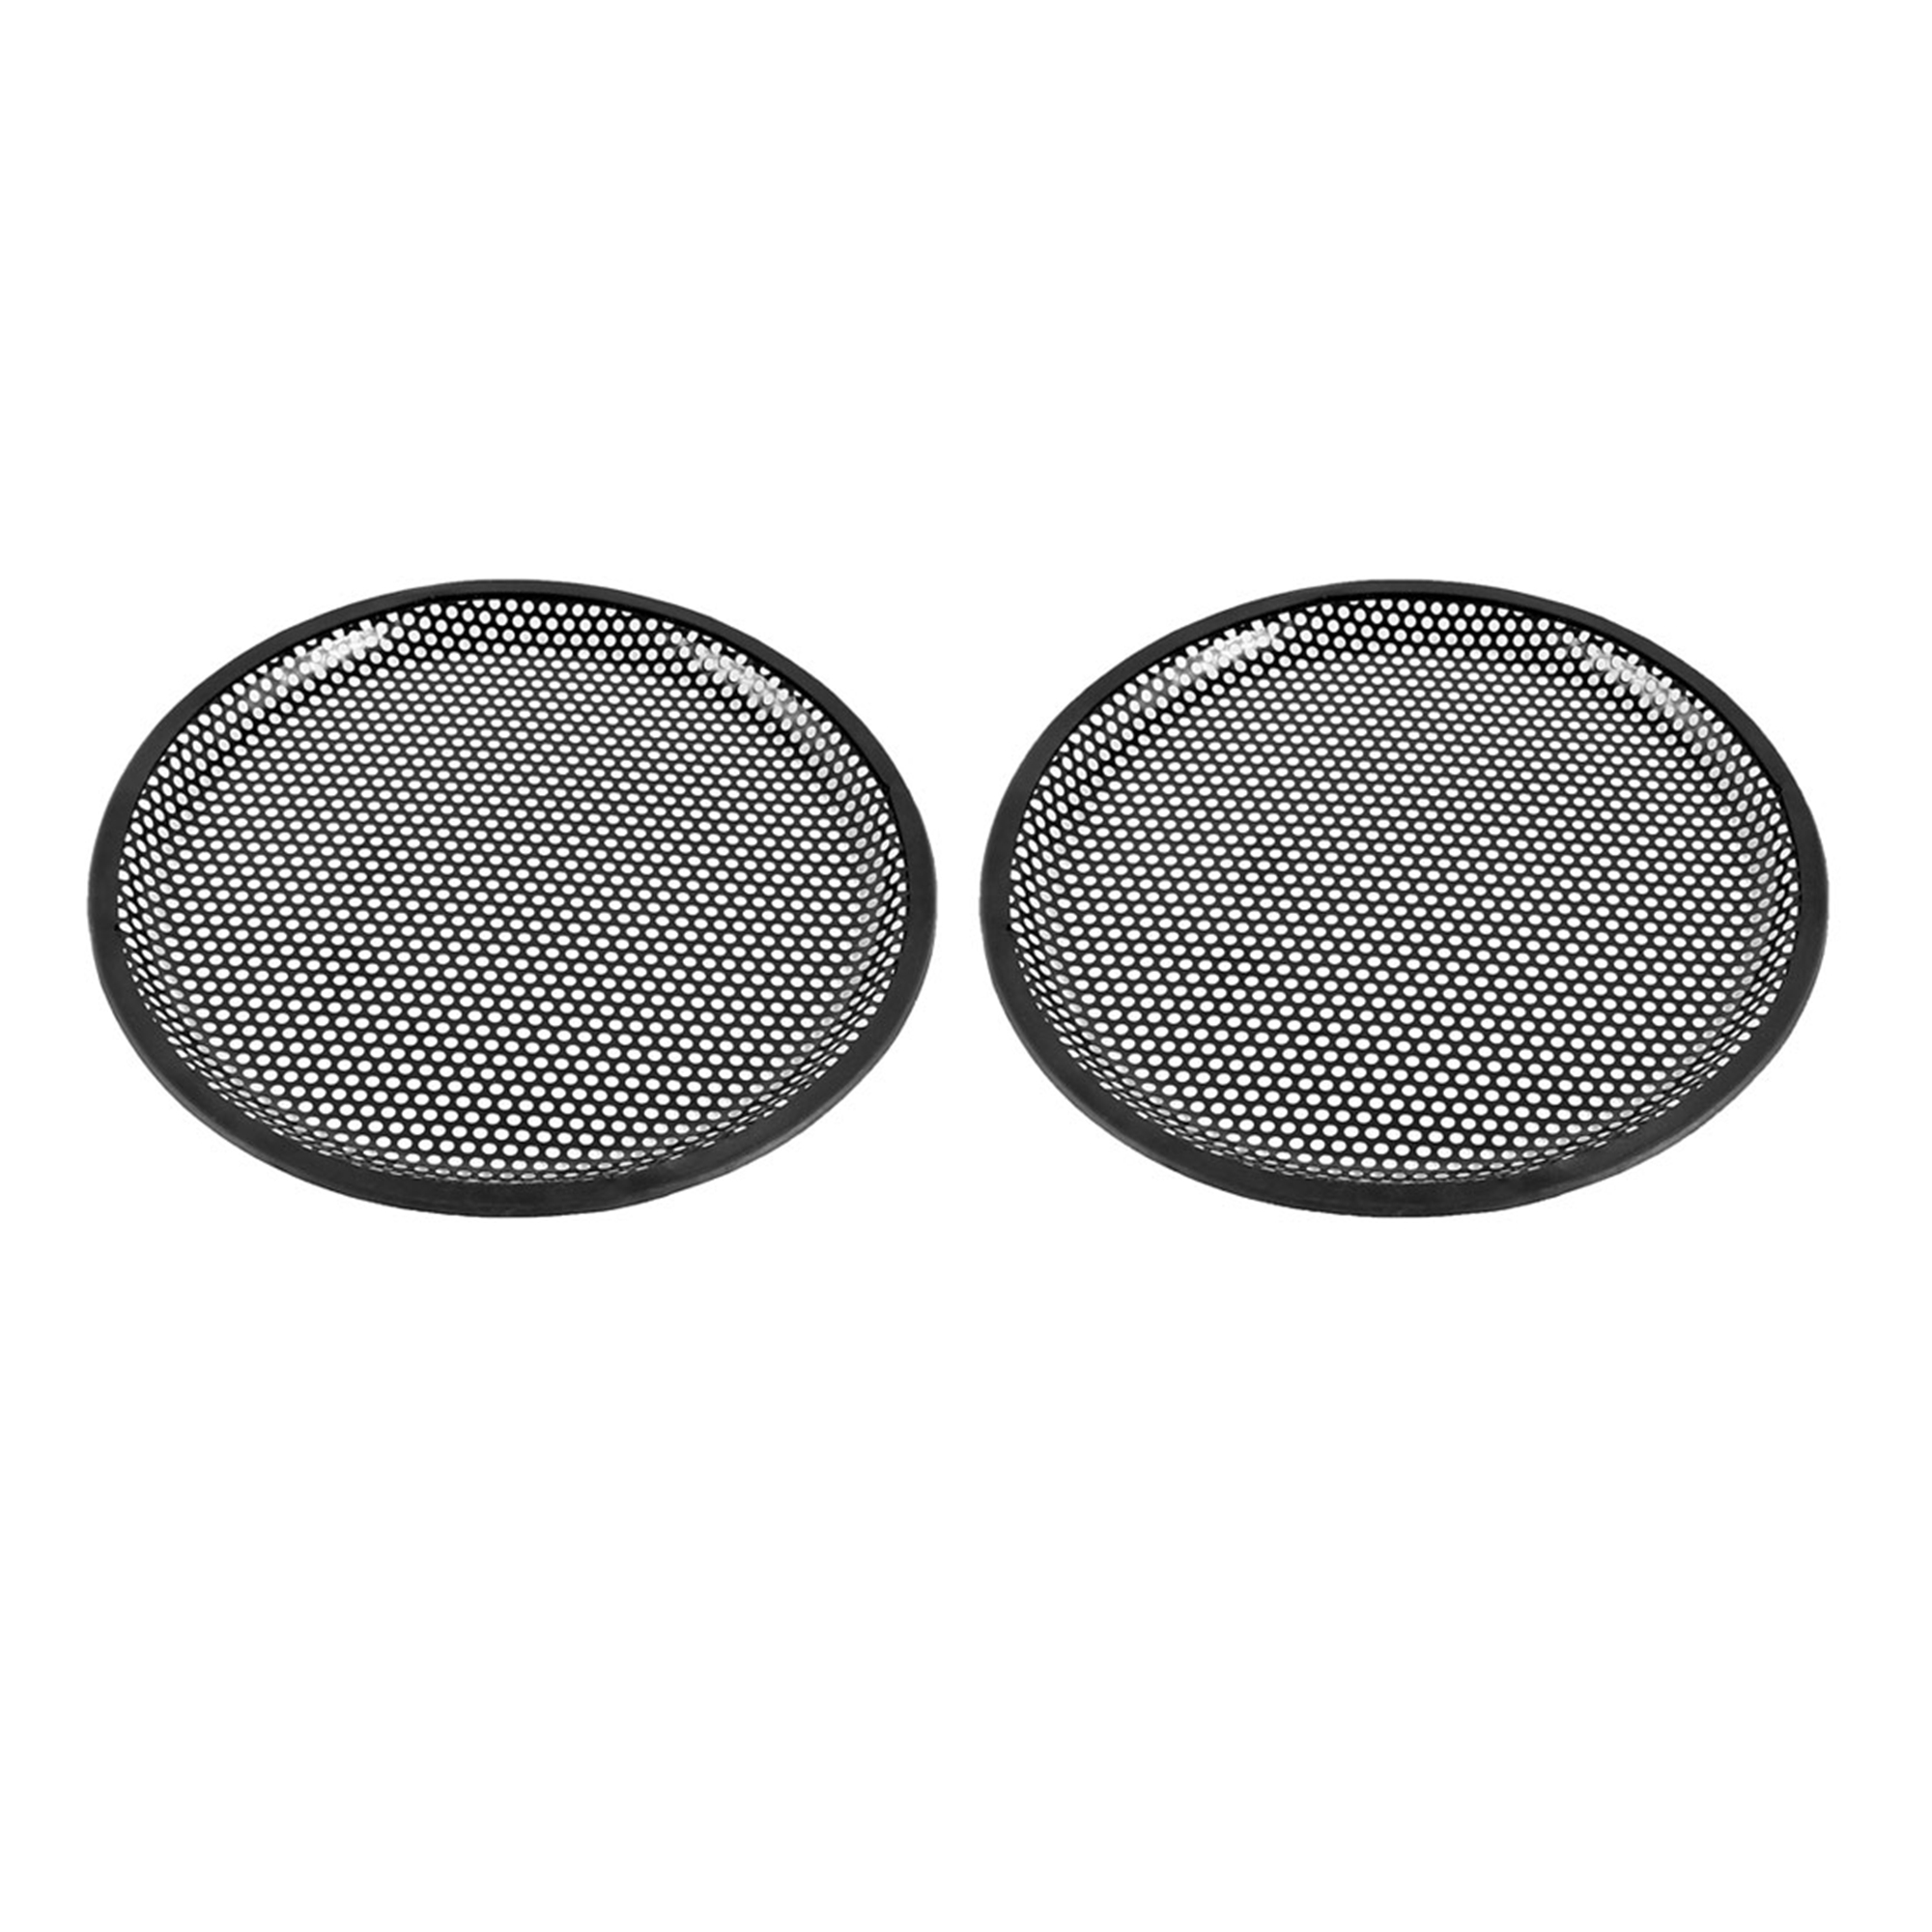 "10"" Dia Metal Mesh Round Car Woofer Cover Speaker Grill Black 2 Pcs"